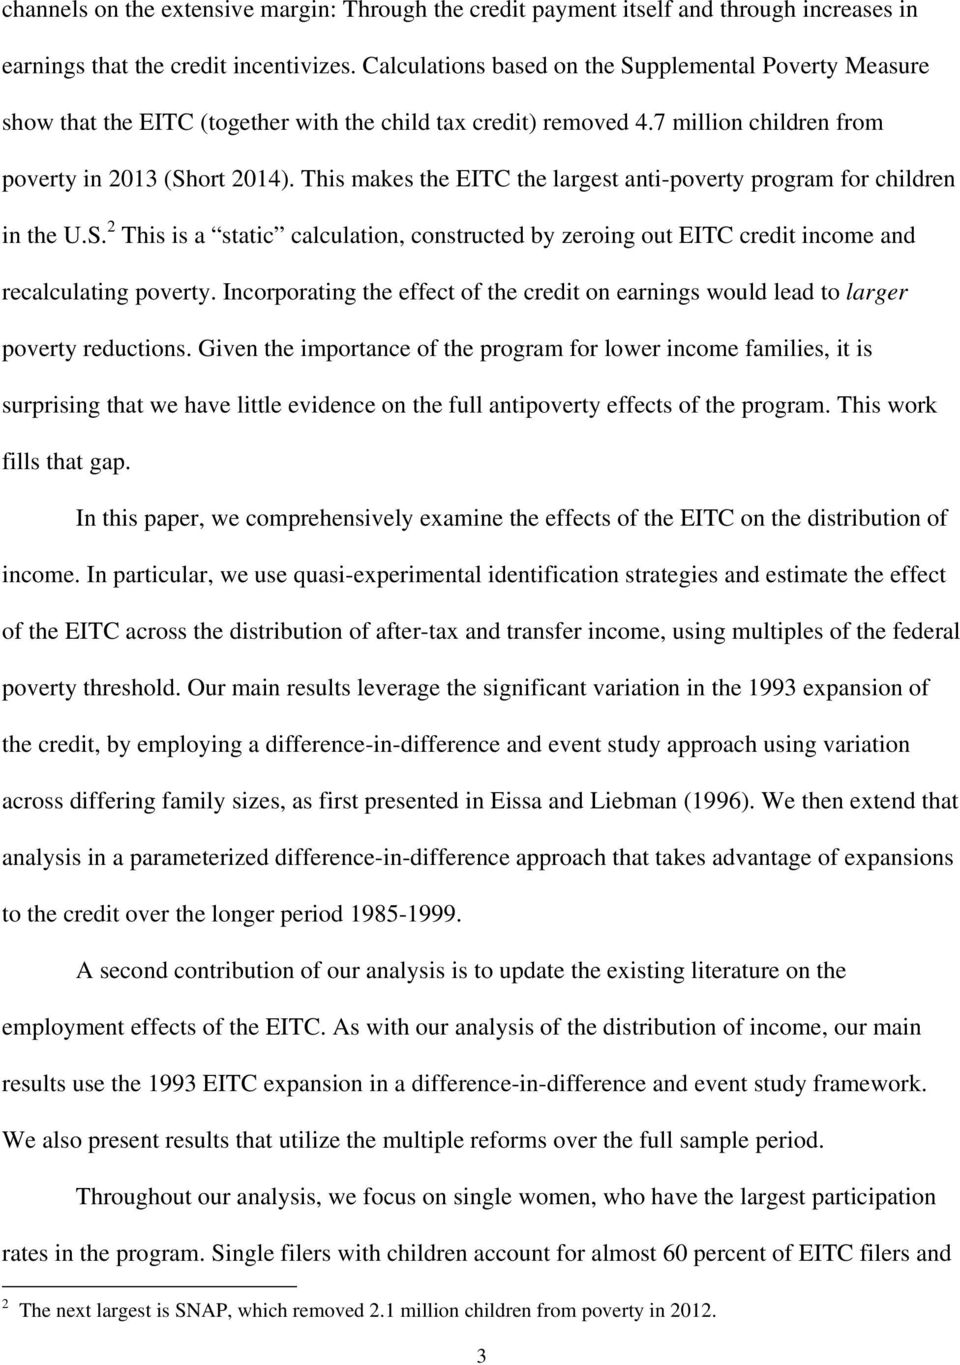 This makes the EITC the largest anti-poverty program for children in the U.S. 2 This is a static calculation, constructed by zeroing out EITC credit income and recalculating poverty.